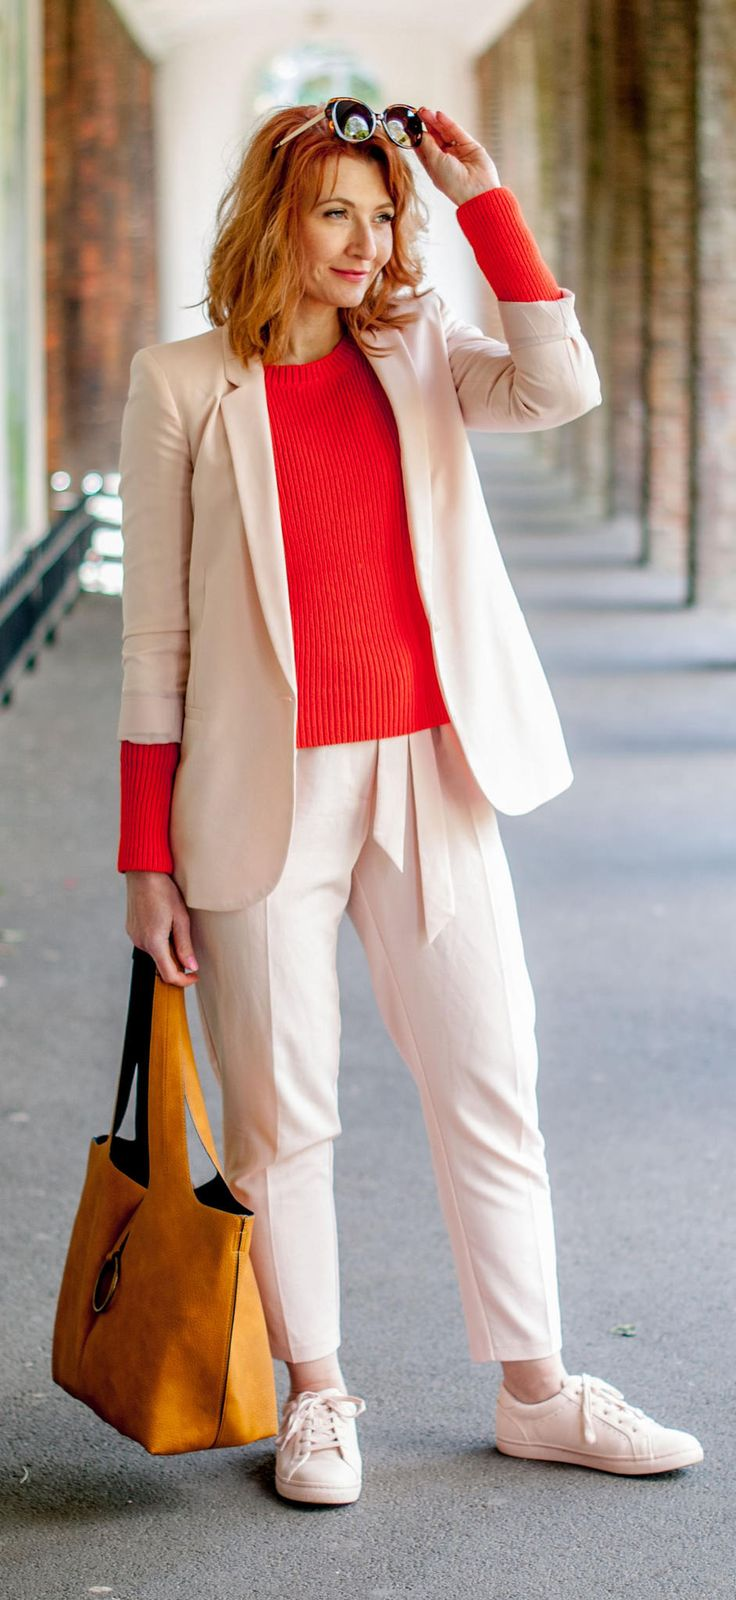 Bright spring/summer outfit: Blush pink trouser (pants) suit \ matching sneakers \ tomato orange red sweater \ yellow ochre suede hobo bag \ tortoiseshell sunglasses | Not Dressed As Lamb, over 40 style